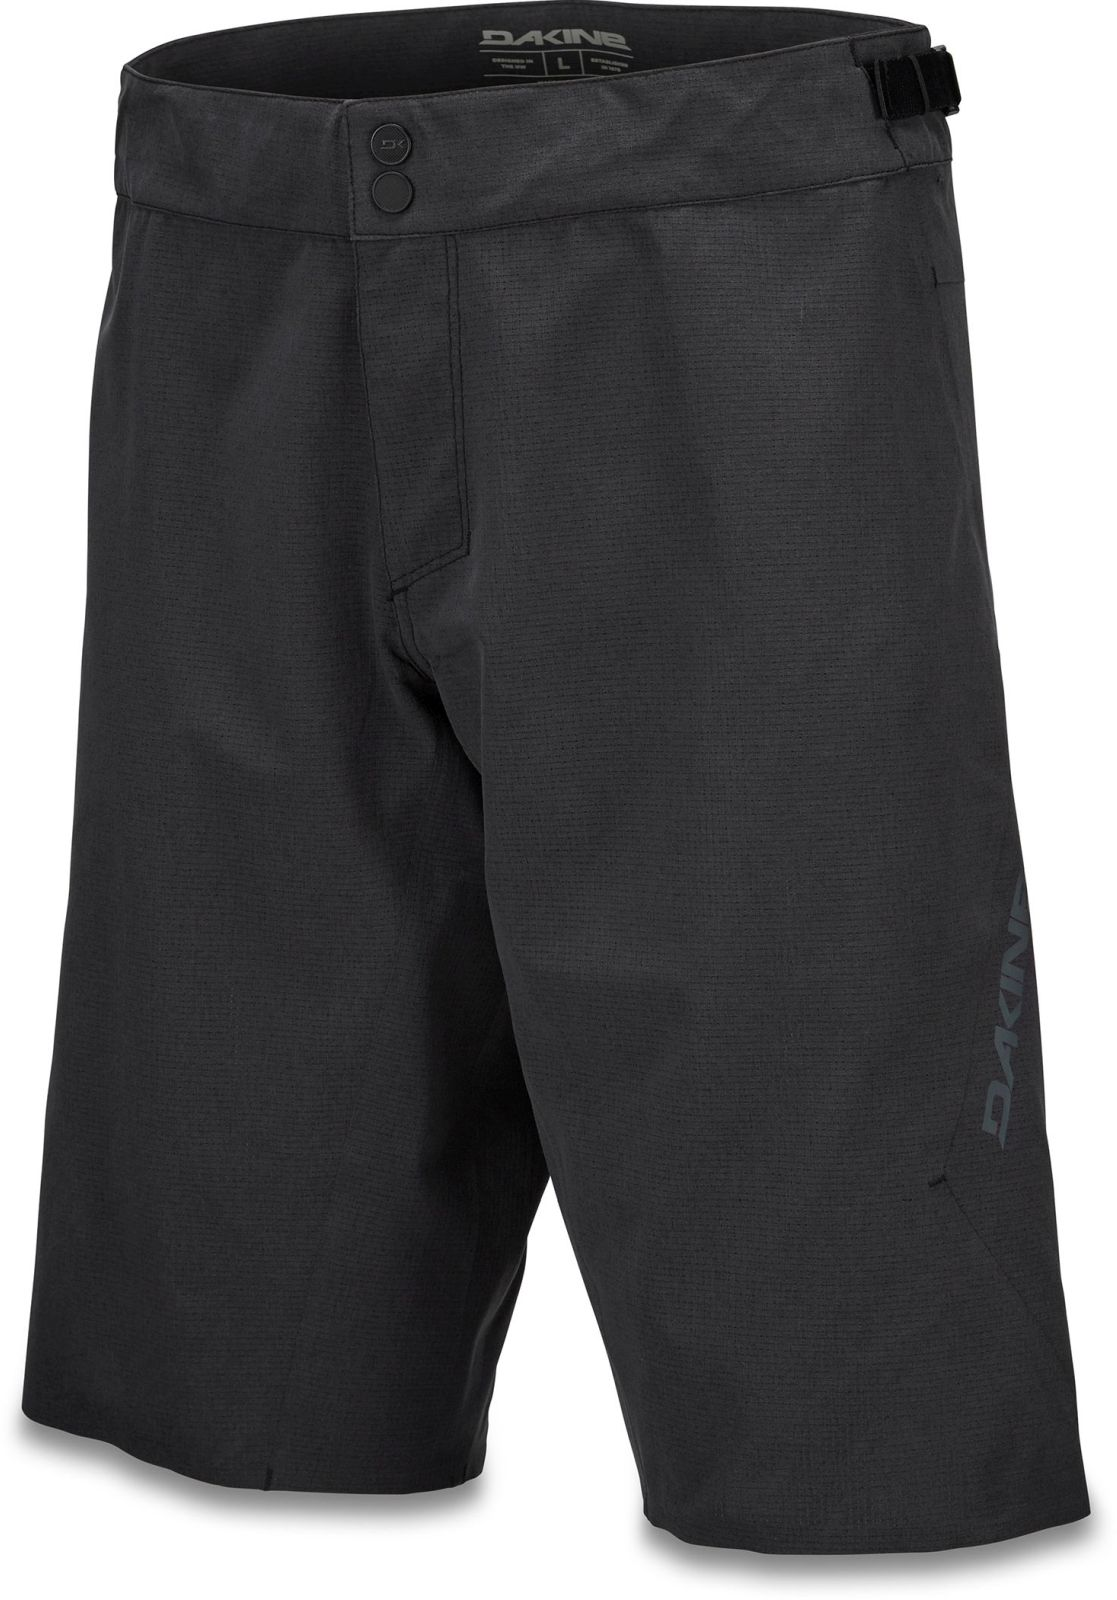 Dakine Boundary Short - black XL